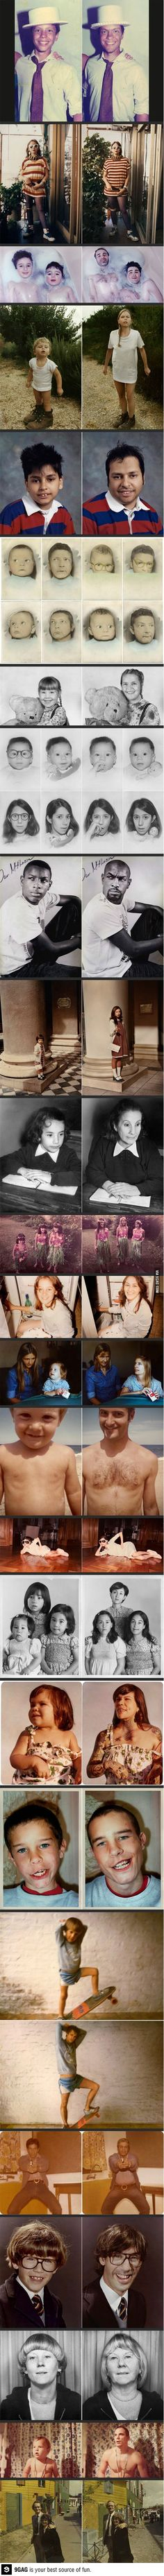 Lets make your own then and now photos